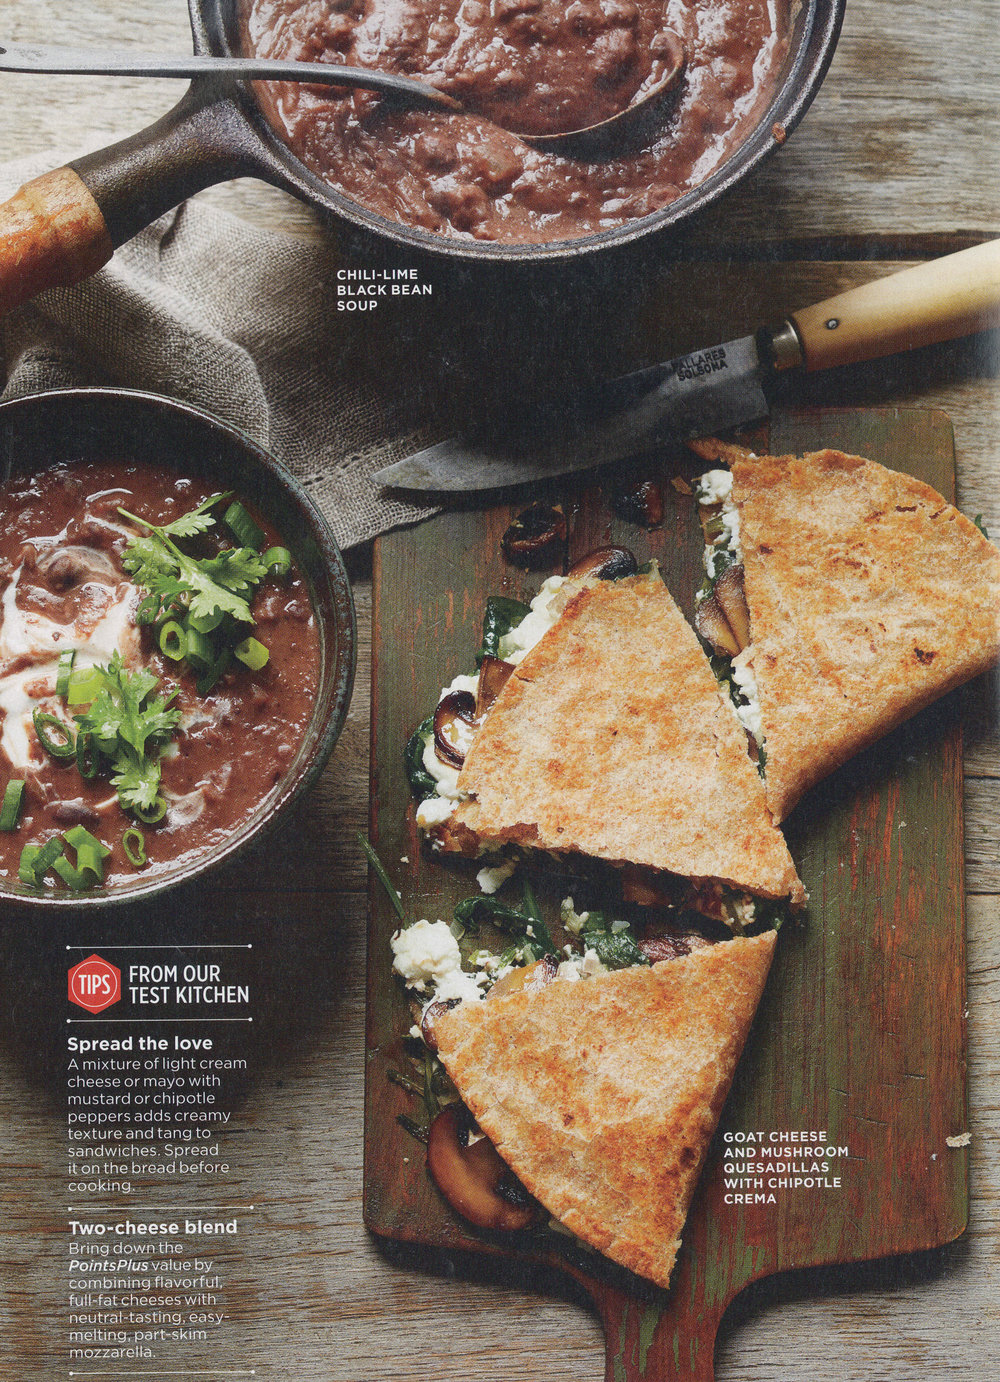 black bean soup with goat cheese quesadillas picture.jpg